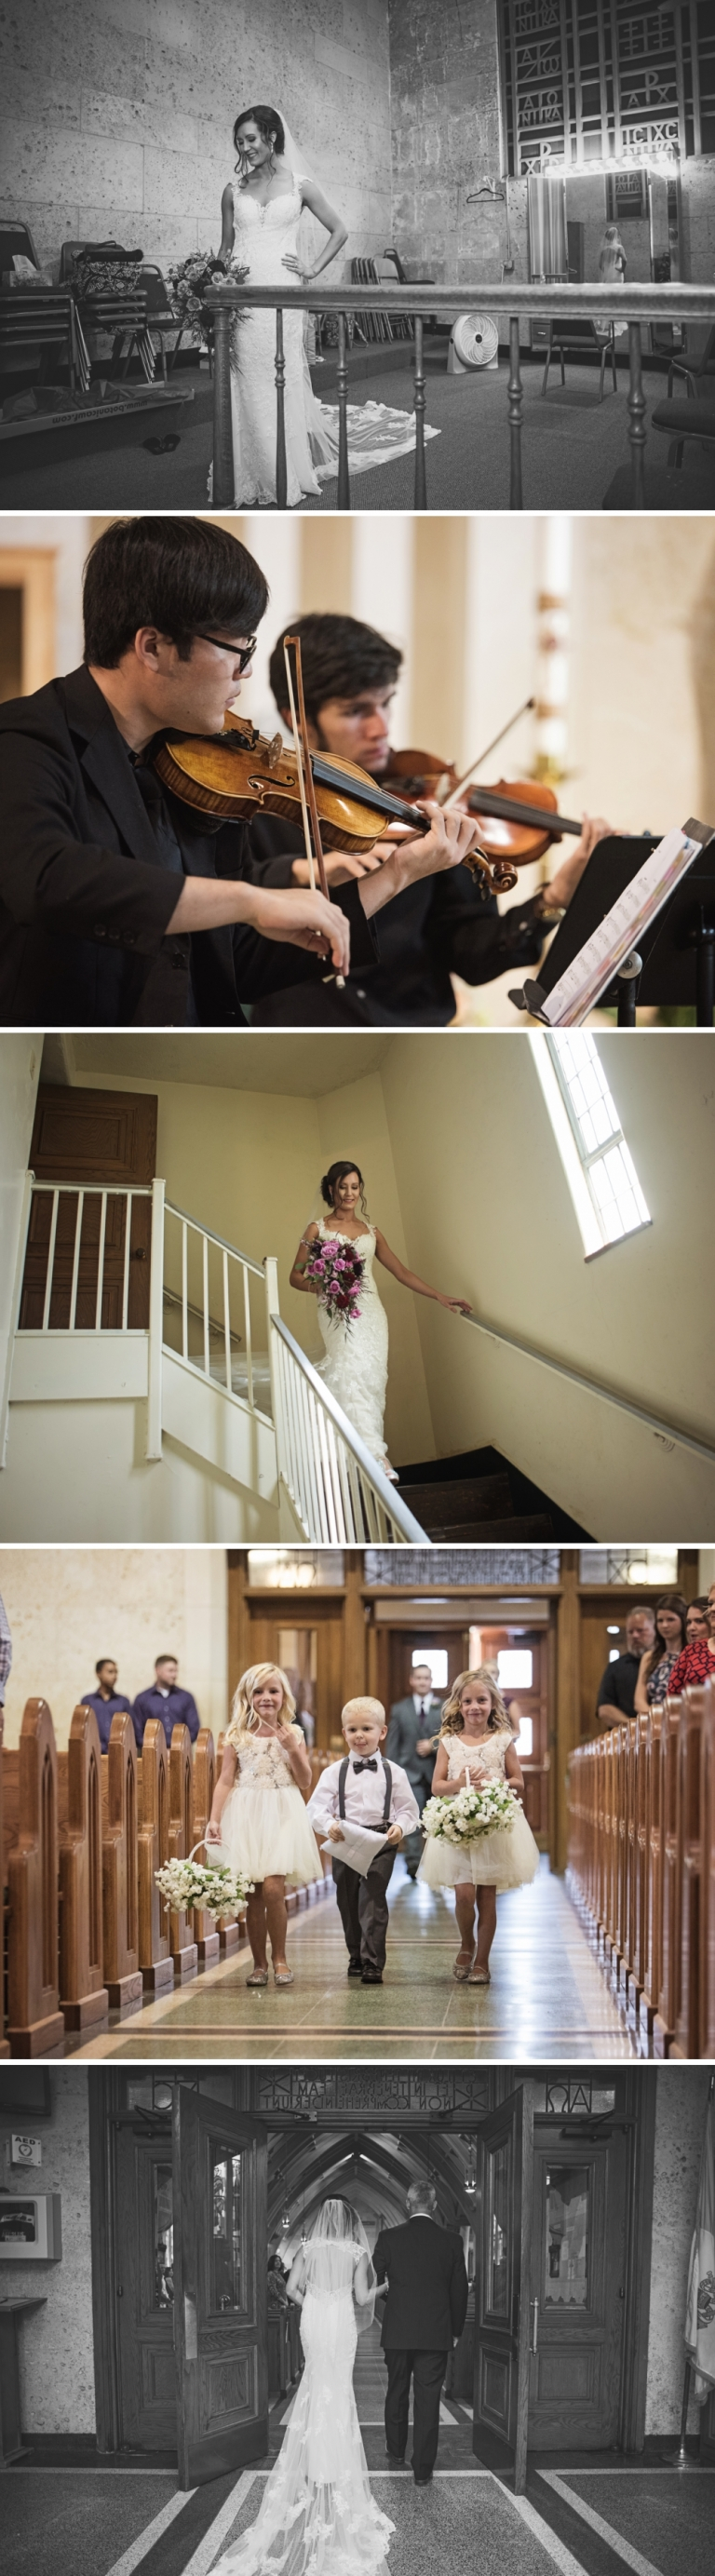 Texas Catholic Wedding Photographer